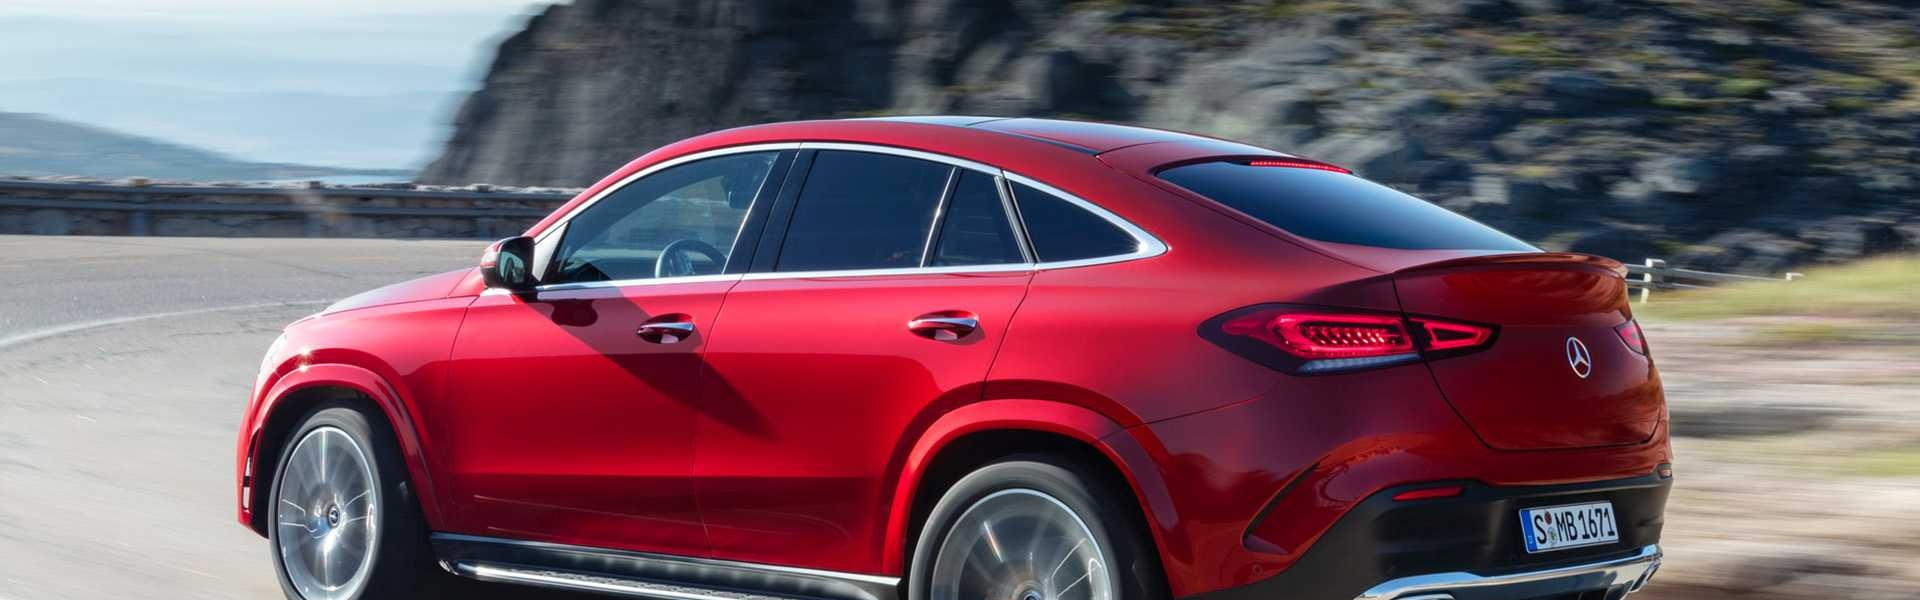 mercedes-gle-coupe-2019 (1).jpg